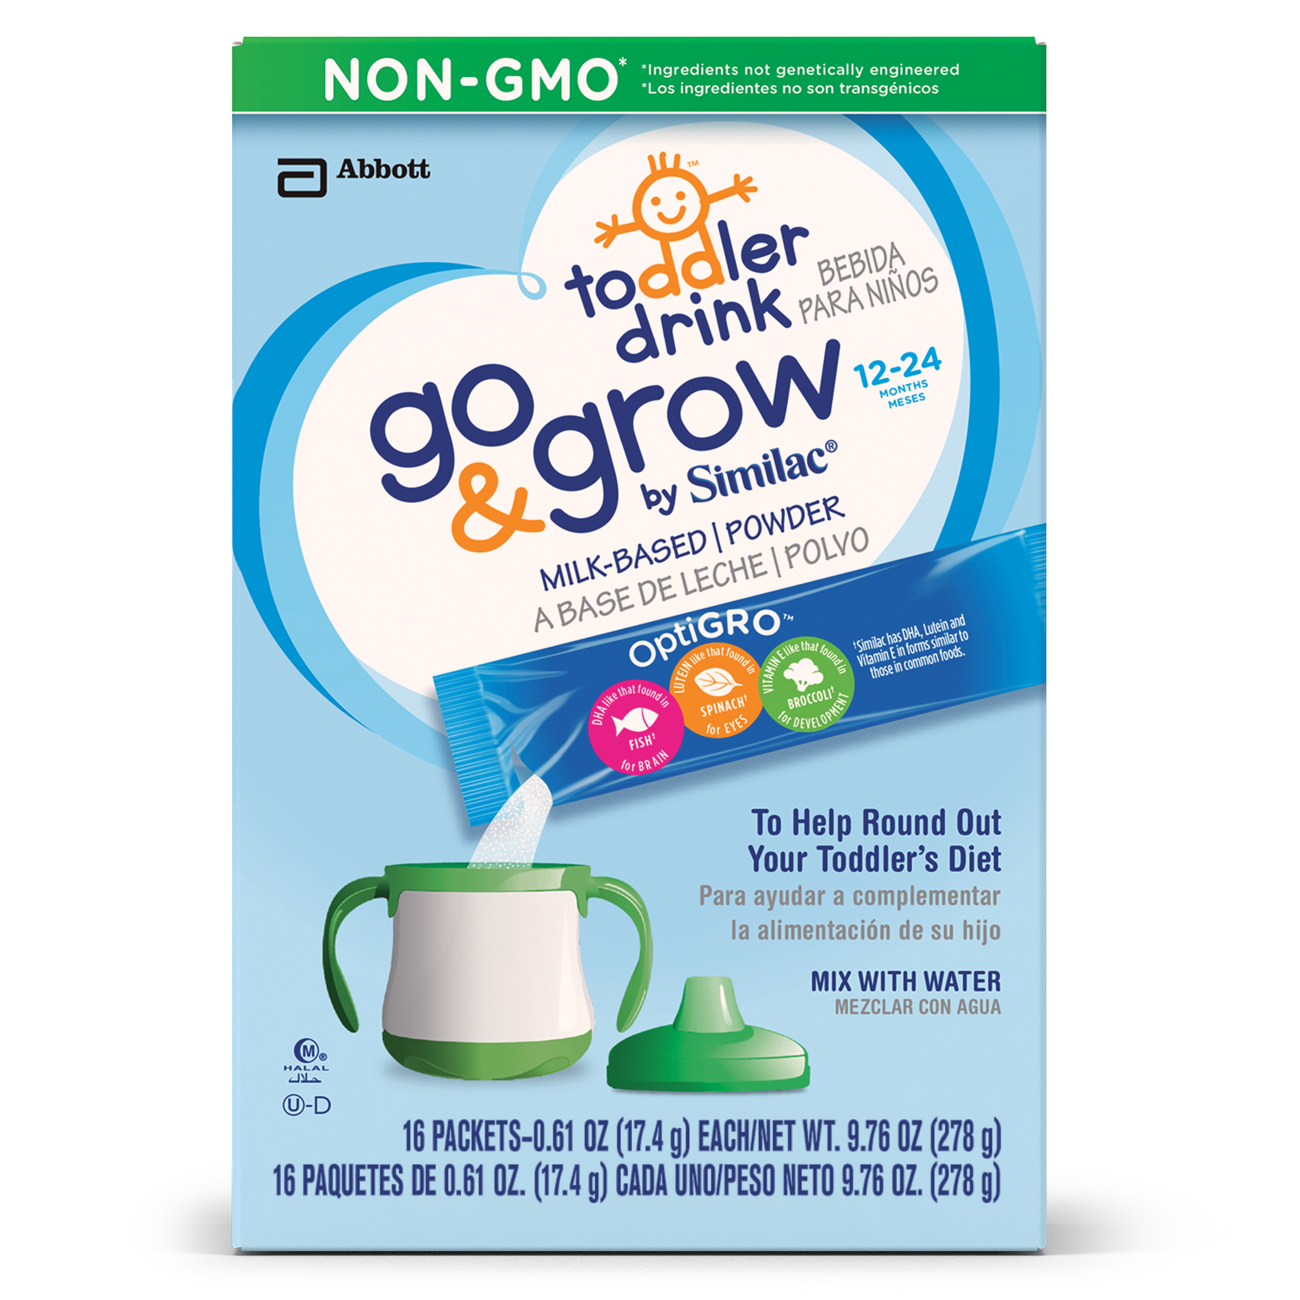 Go & Grow by Similac NON-GMO Milk-Based Toddler Drink, Powder, Powder Packs, 0.61 oz (Pack of 16)